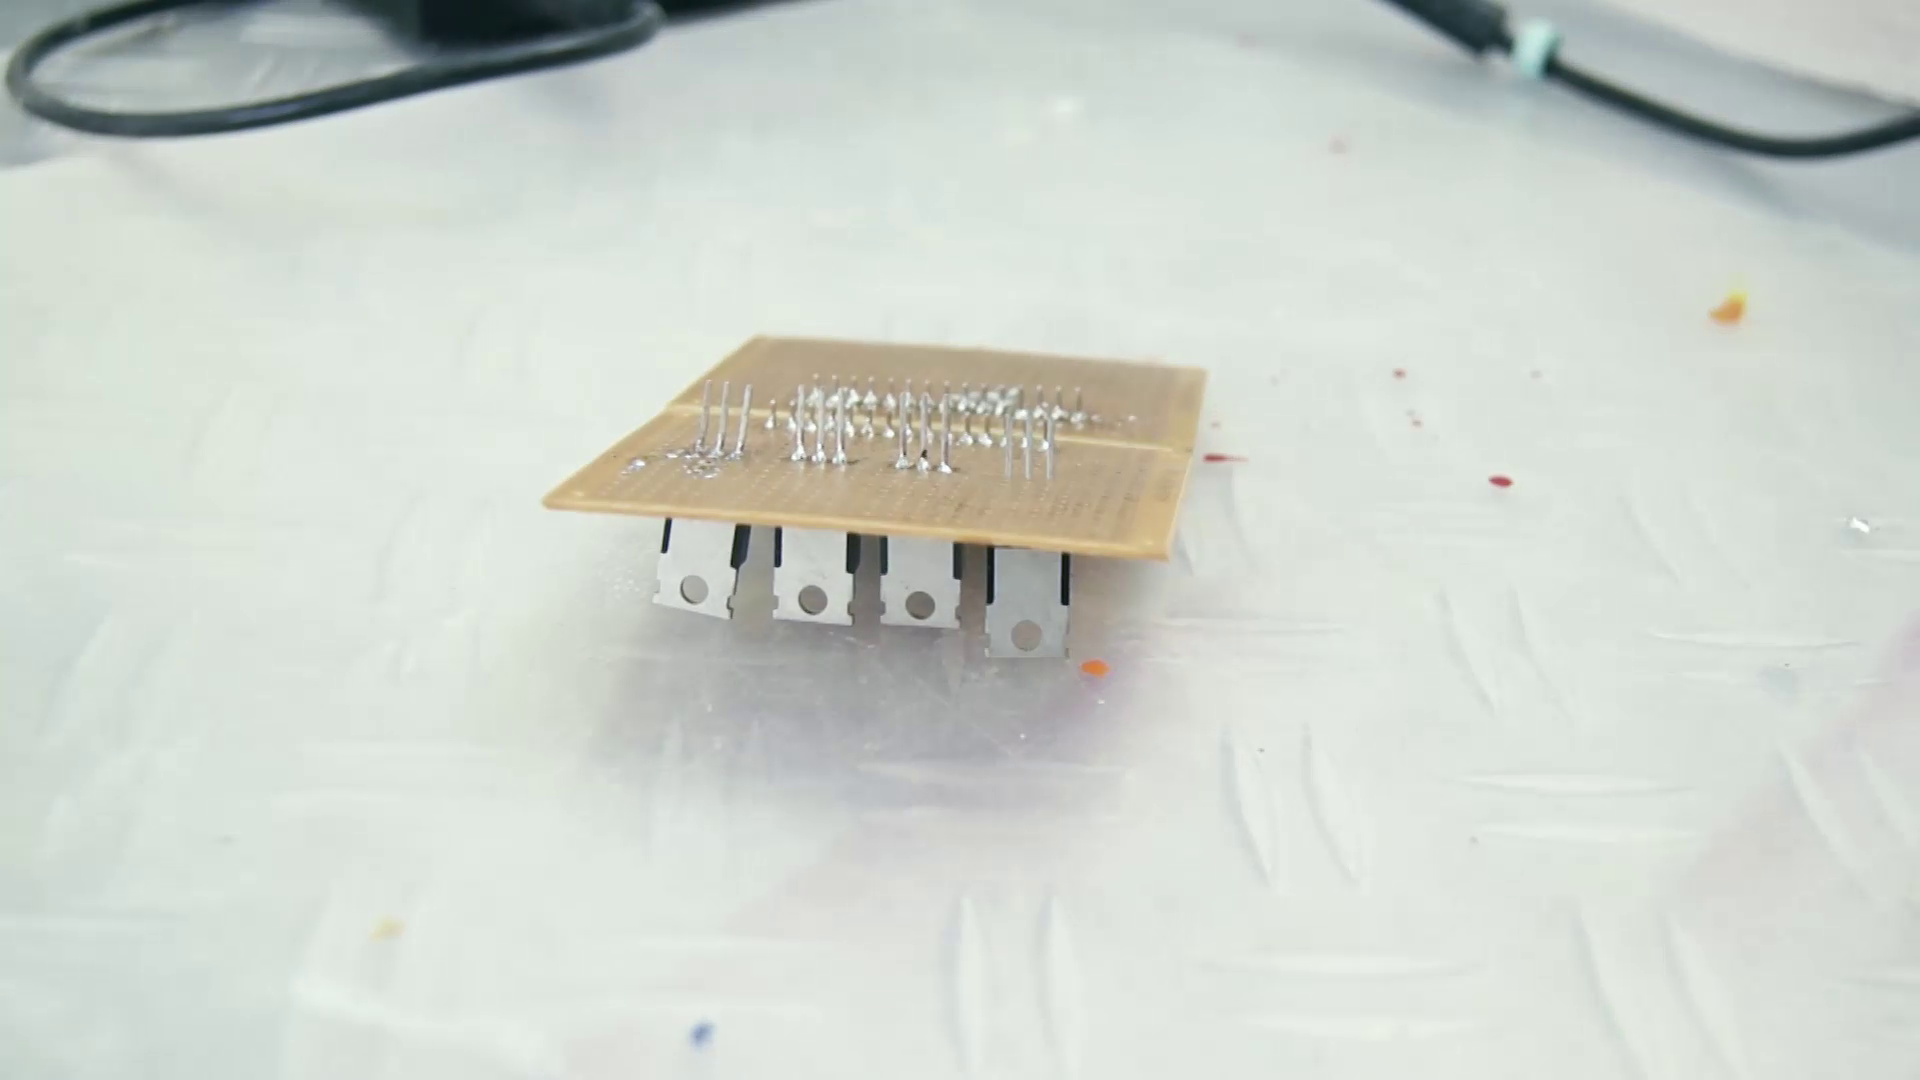 Picture of Perf Board & Mosfets